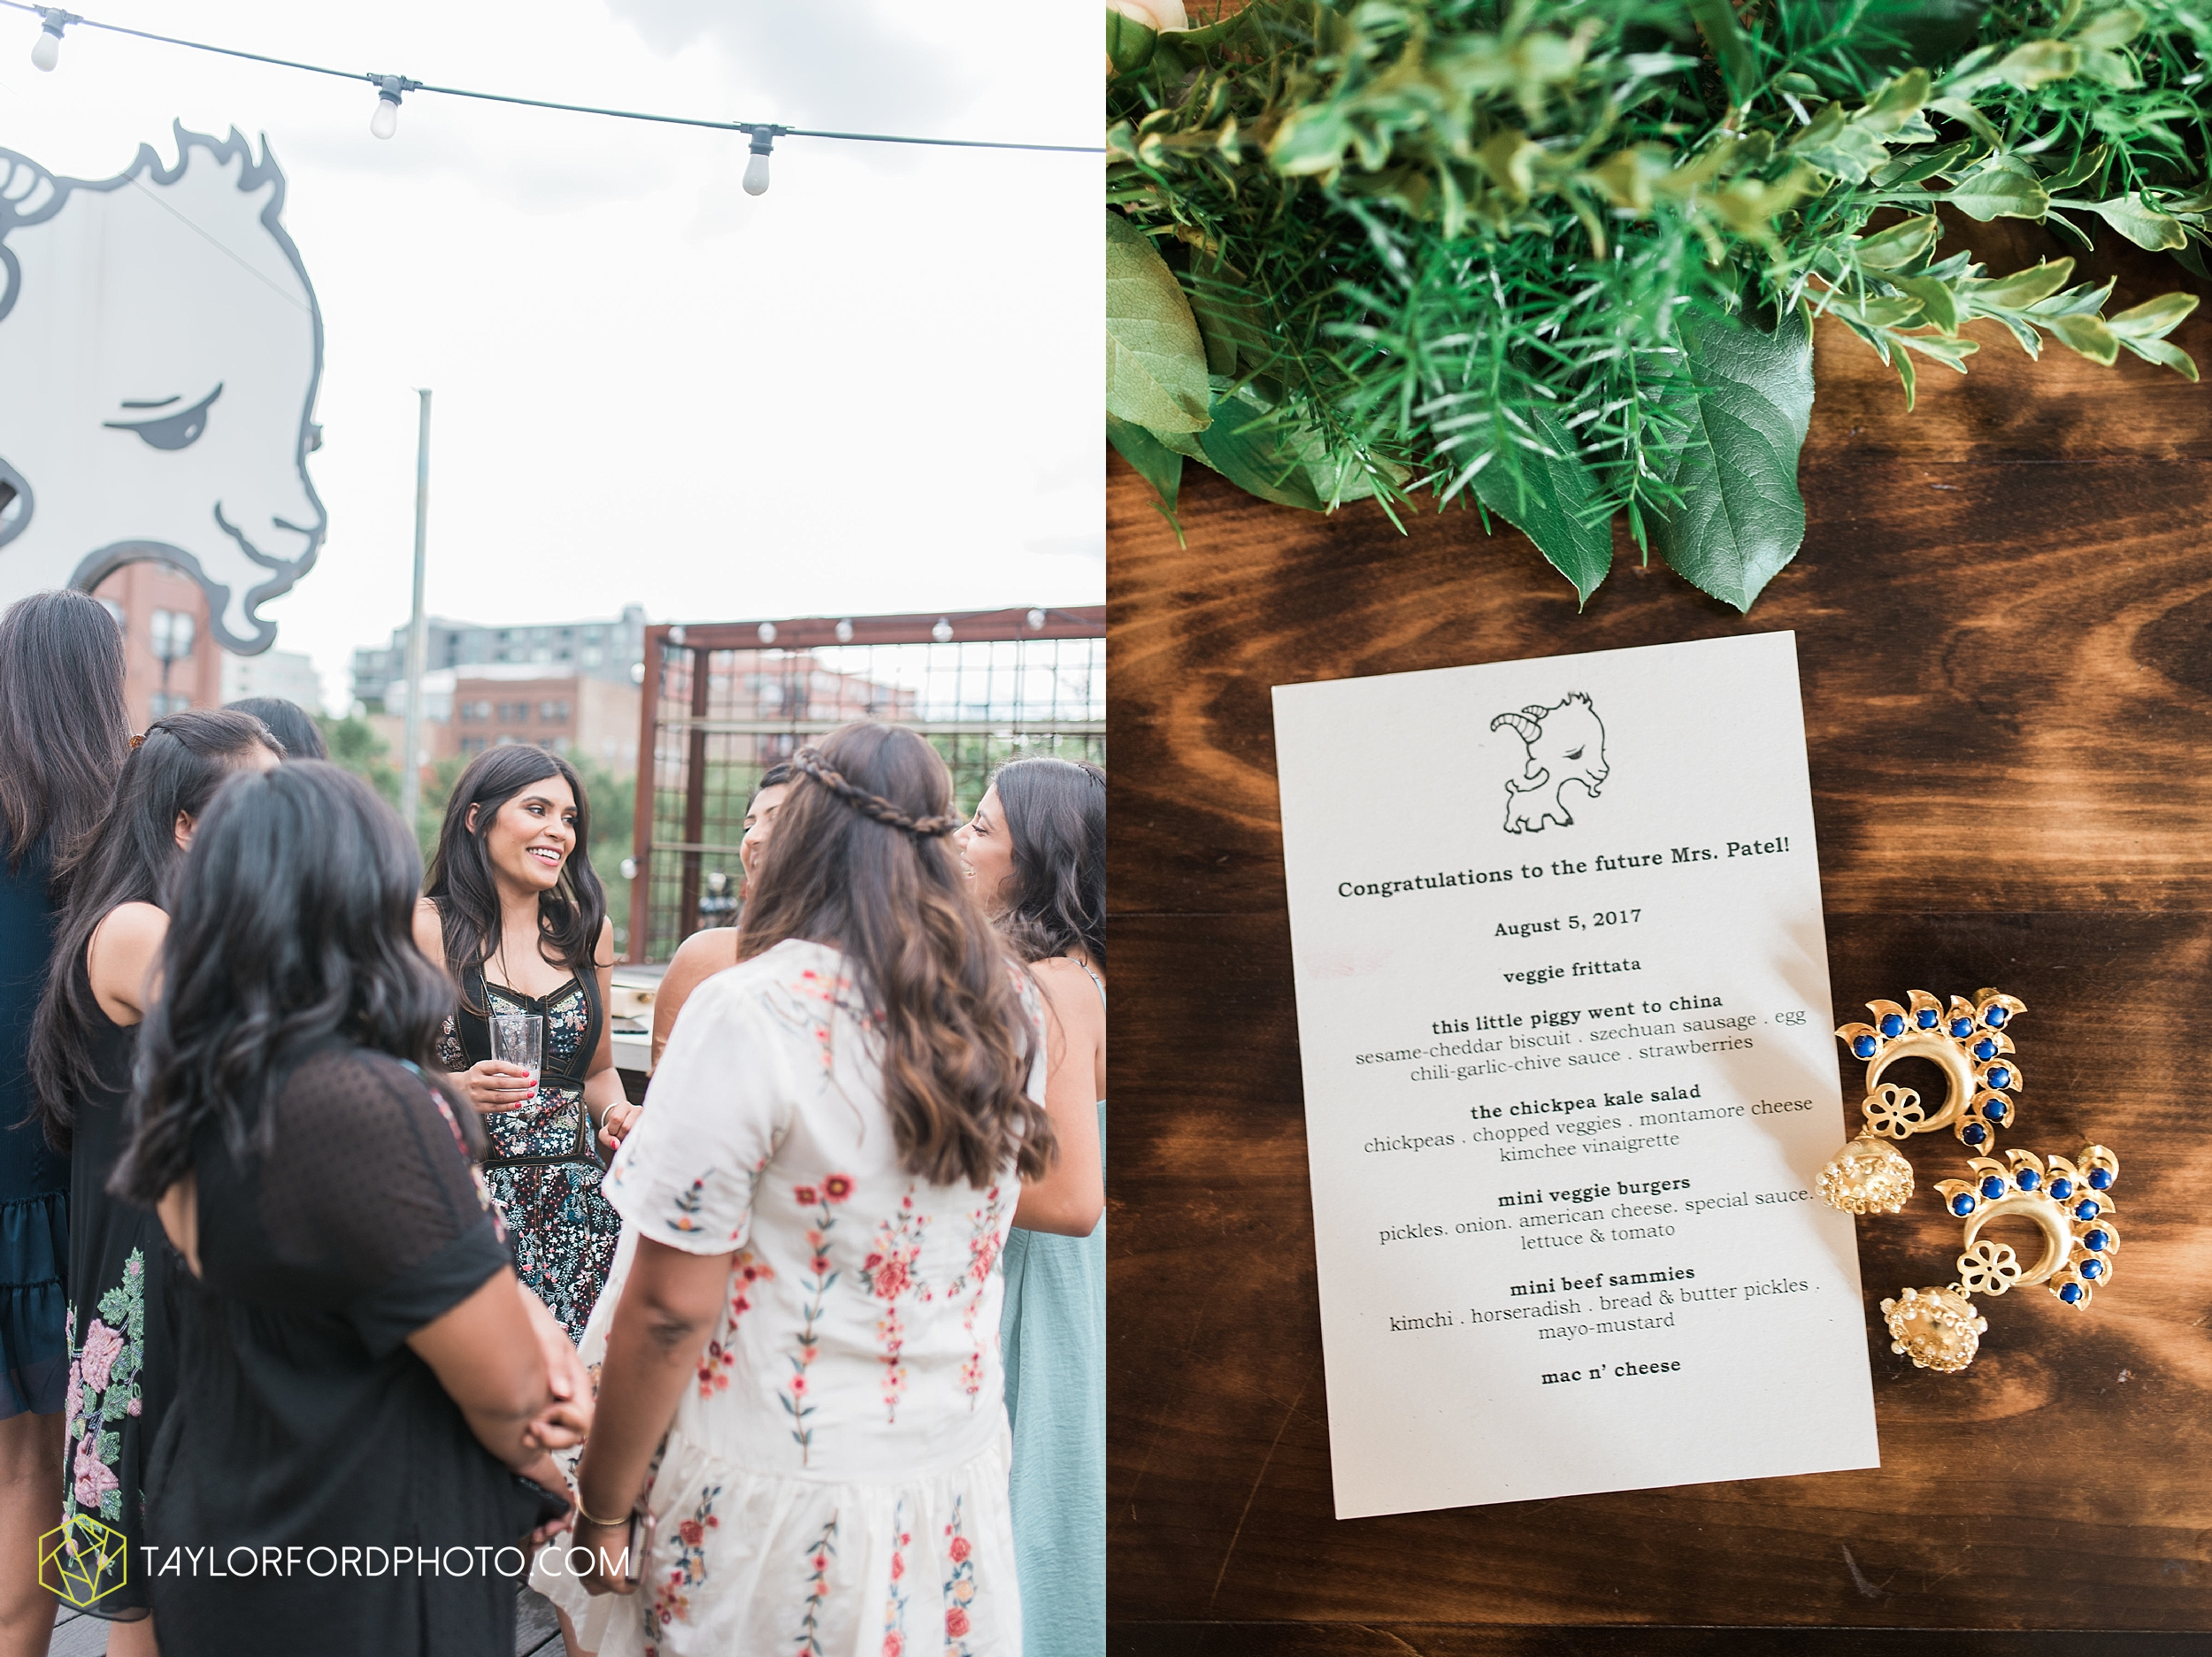 chicago-illinois-bridal-shower-wedding-engagement-photographer-Taylor-Ford-Photography-the-little-goat-diner-rooftop-indian-ceremony_5118.jpg